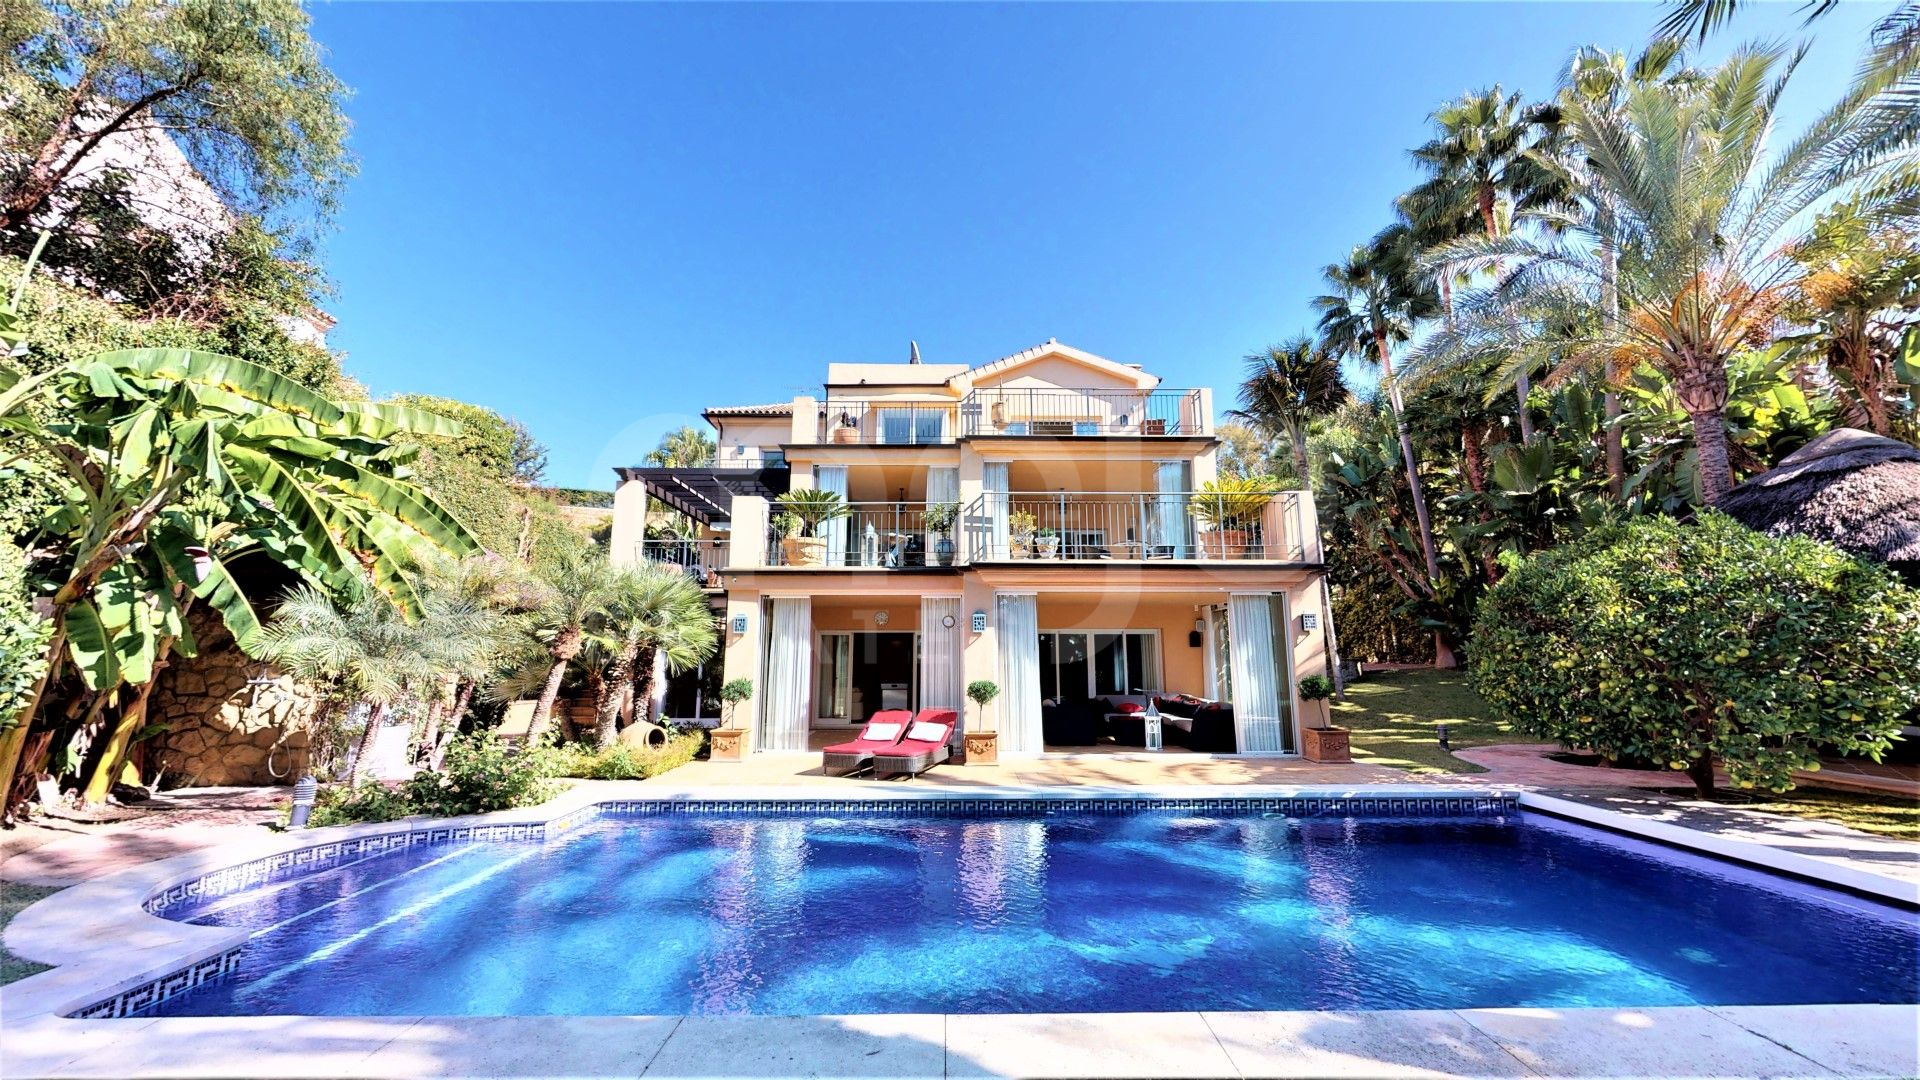 Villa for sale in El Rosario, Marbella